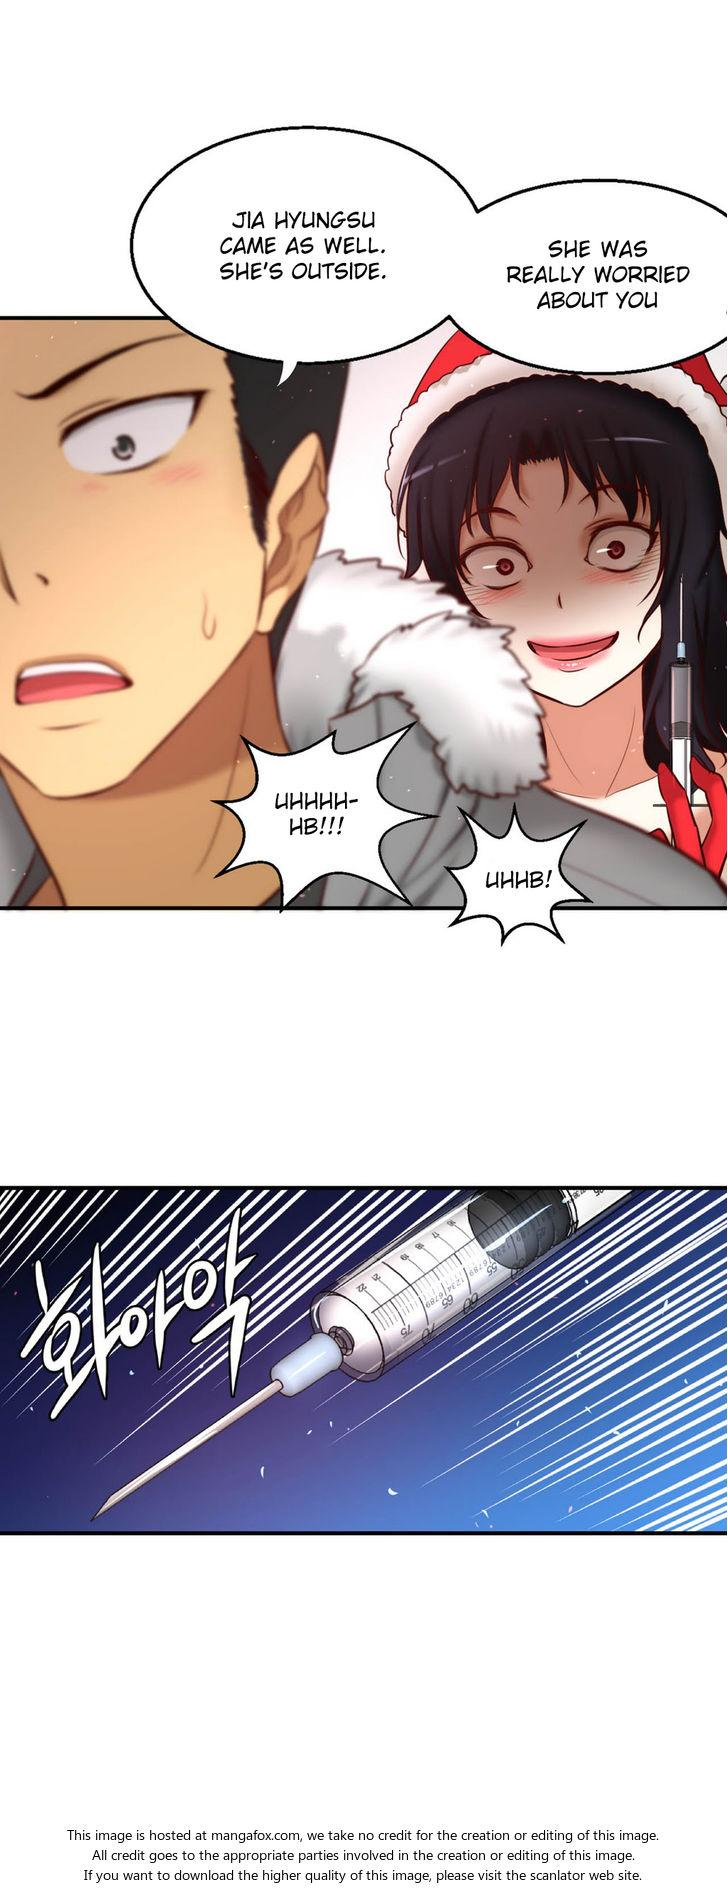 [Donggul Gom] She is Young (English) Part 1/2 1756